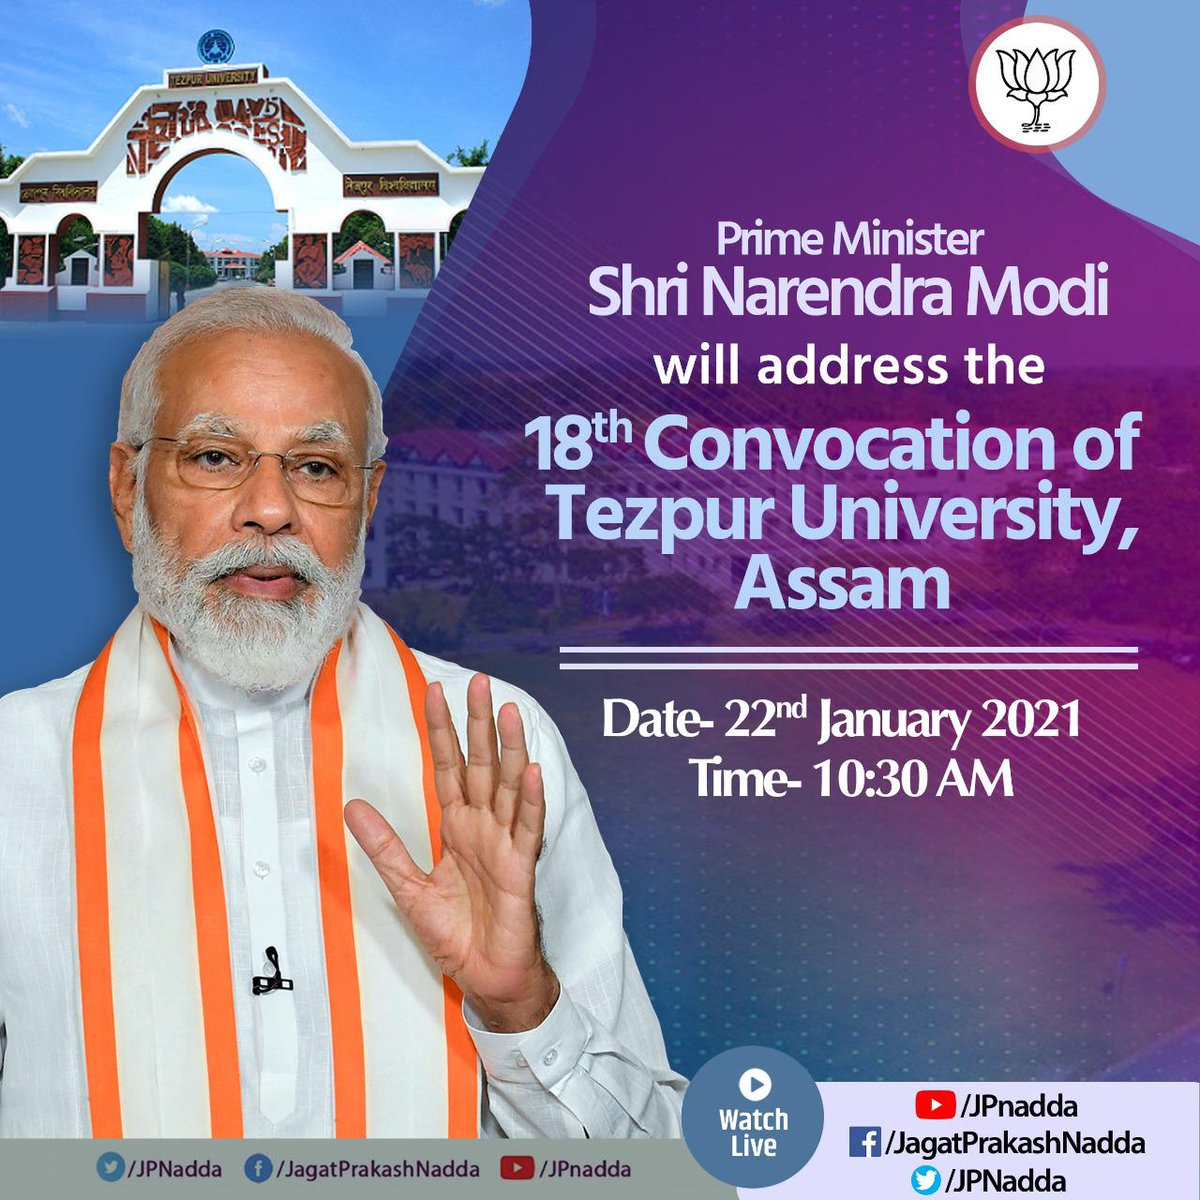 Hon Prime Minister Shri @narendramodi Ji will address the 18th Convocation of Tezpur University, Assam at 10:30 AM today.